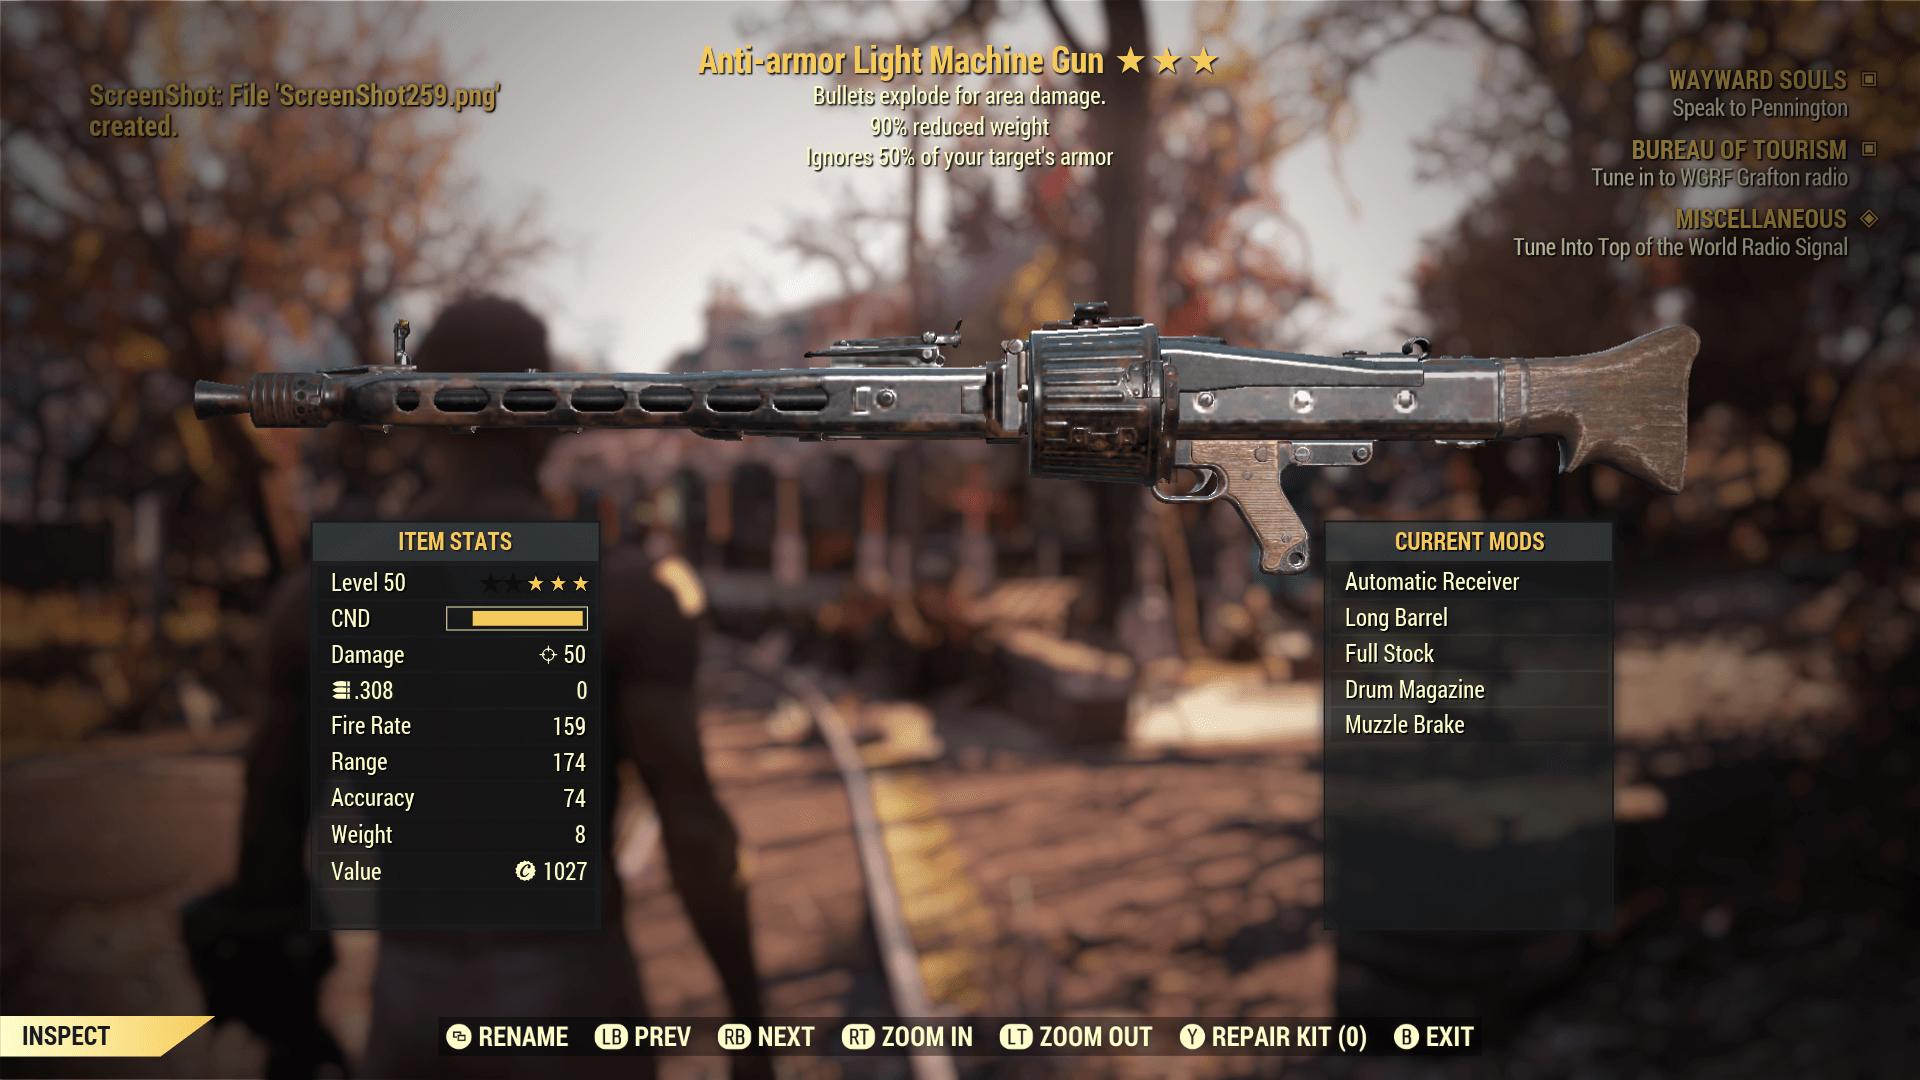 Anti-Armor Light Machine Gun[90% reduced weight+Ignores 50% of your target's armor]